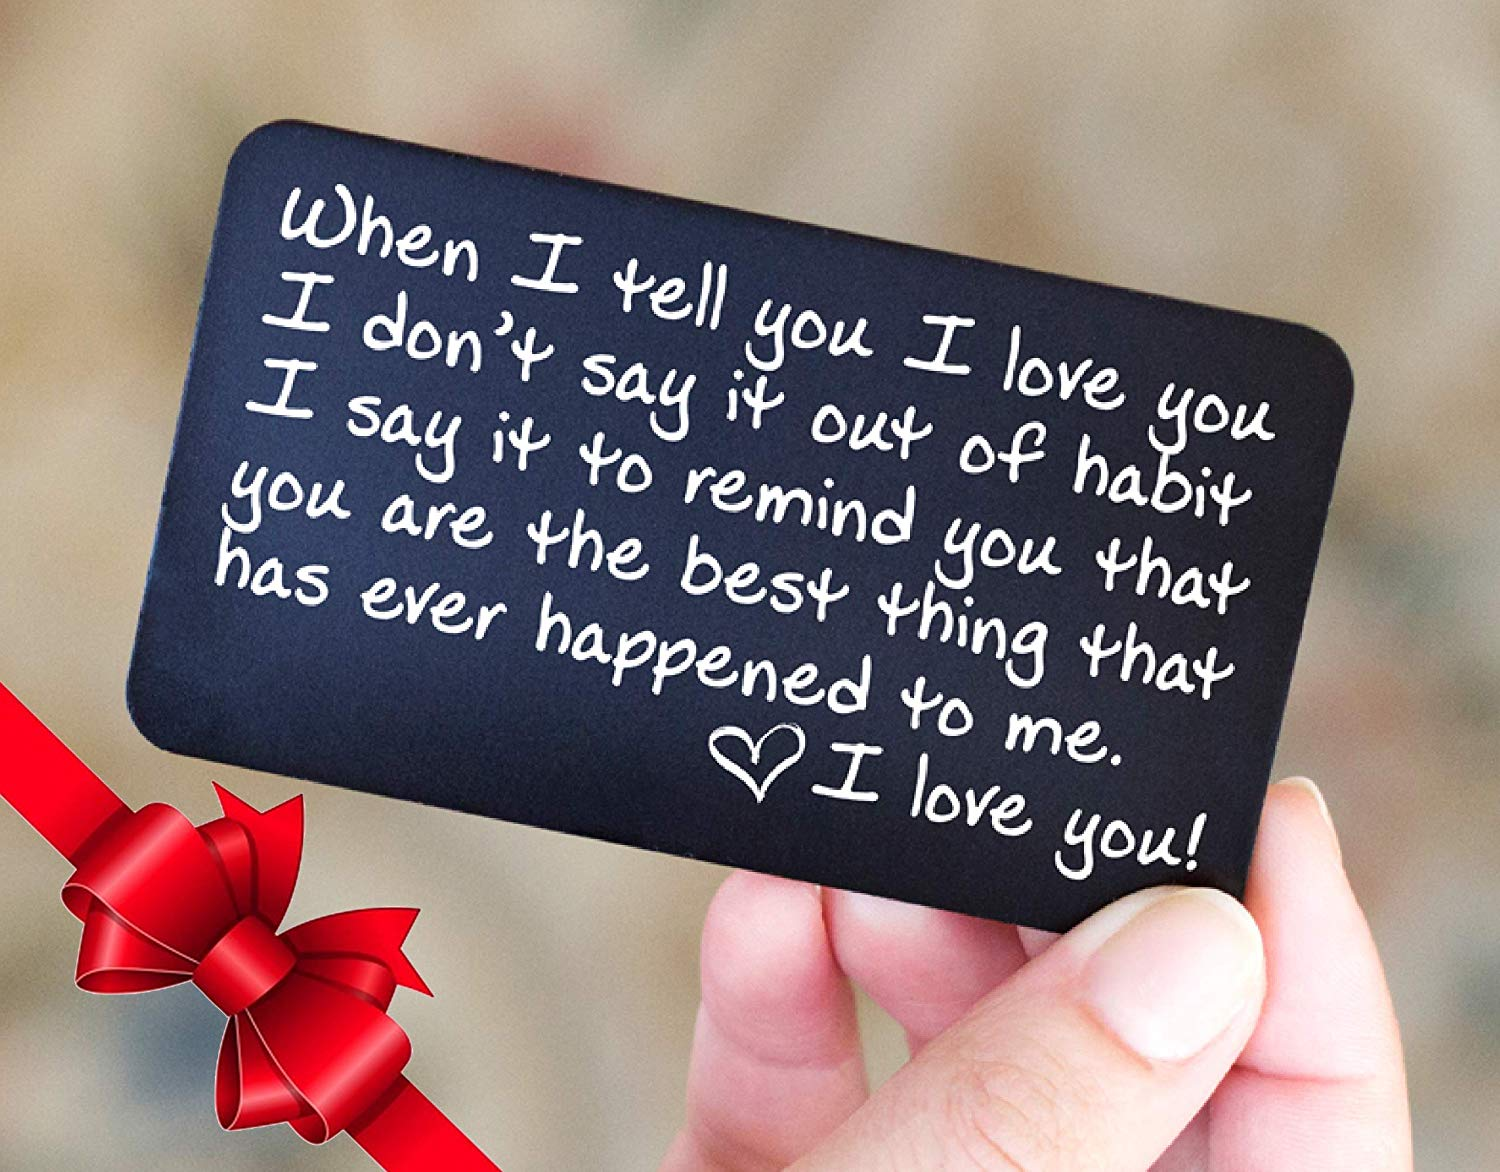 Wallet Card Love Note | Husband Gifts from Wife, Aluminum Anniversary Gifts for Husband | Engraved Boyfriend Gift Idea | Cute Christmas Card | Meaningful & Romantic Mini Wallet Insert for Men